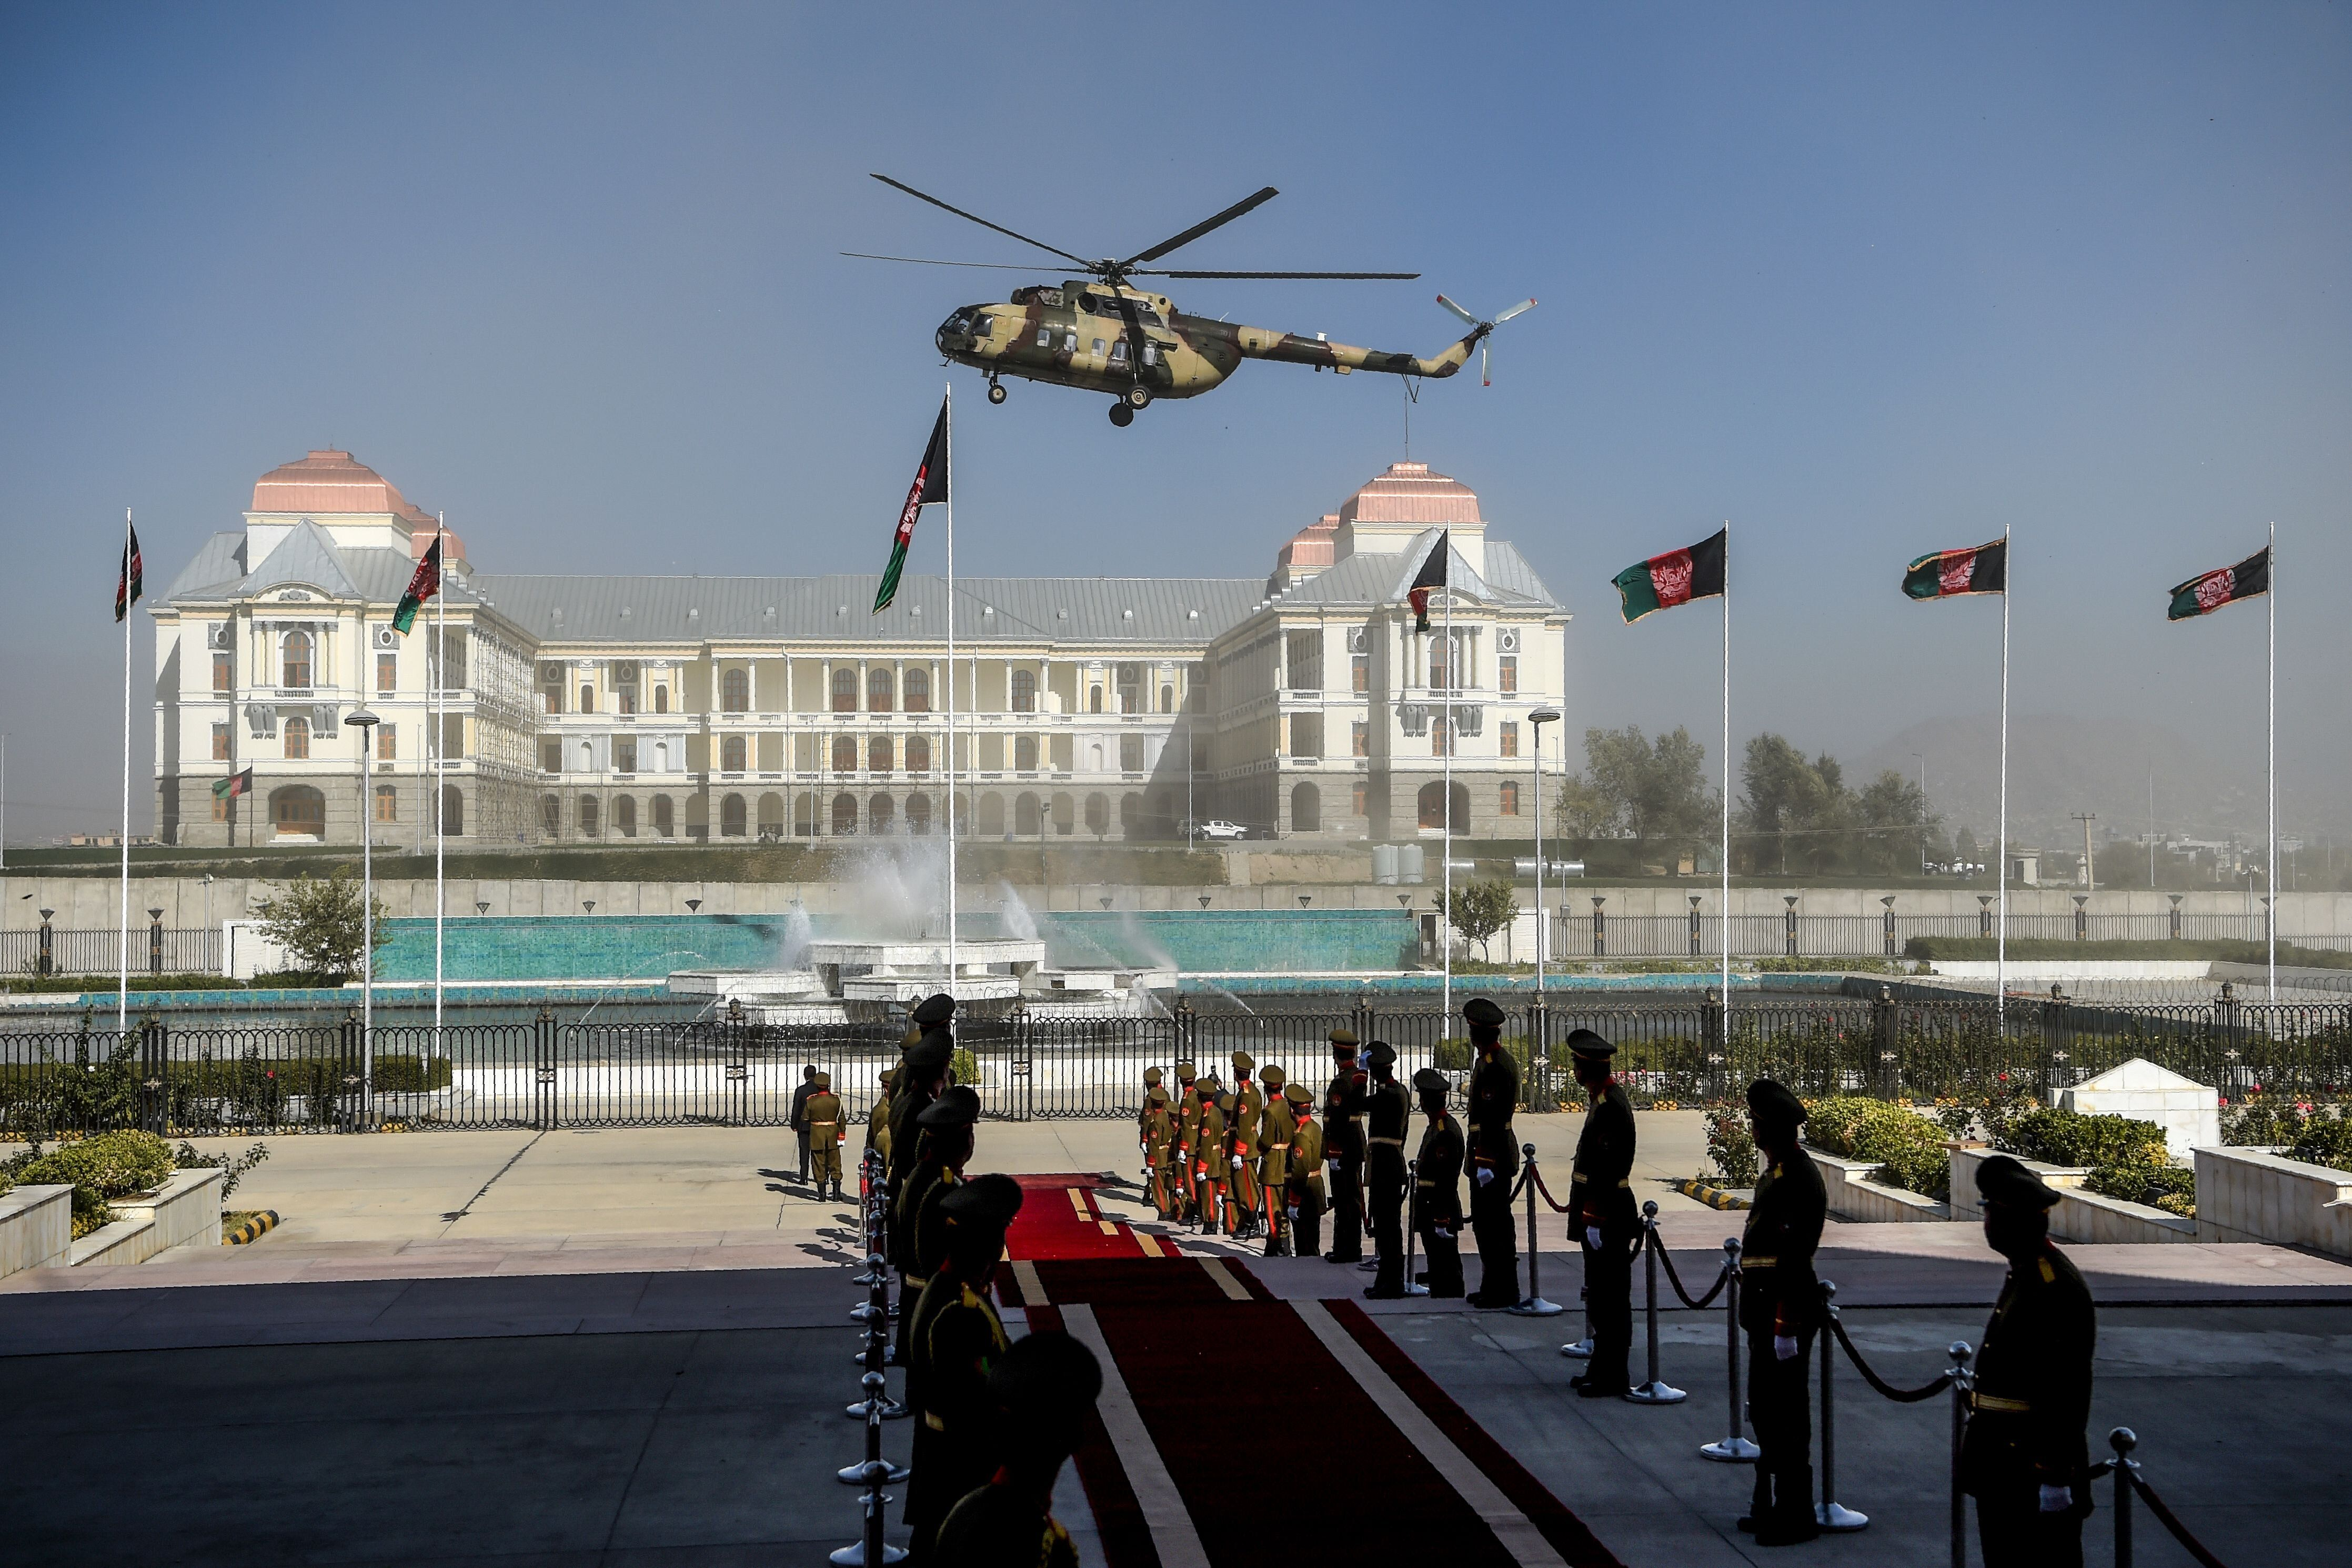 An Afghan Air Force helicopter flies over ahead of the arrival of Afghanistan's President Ashraf Ghani for the introduction o